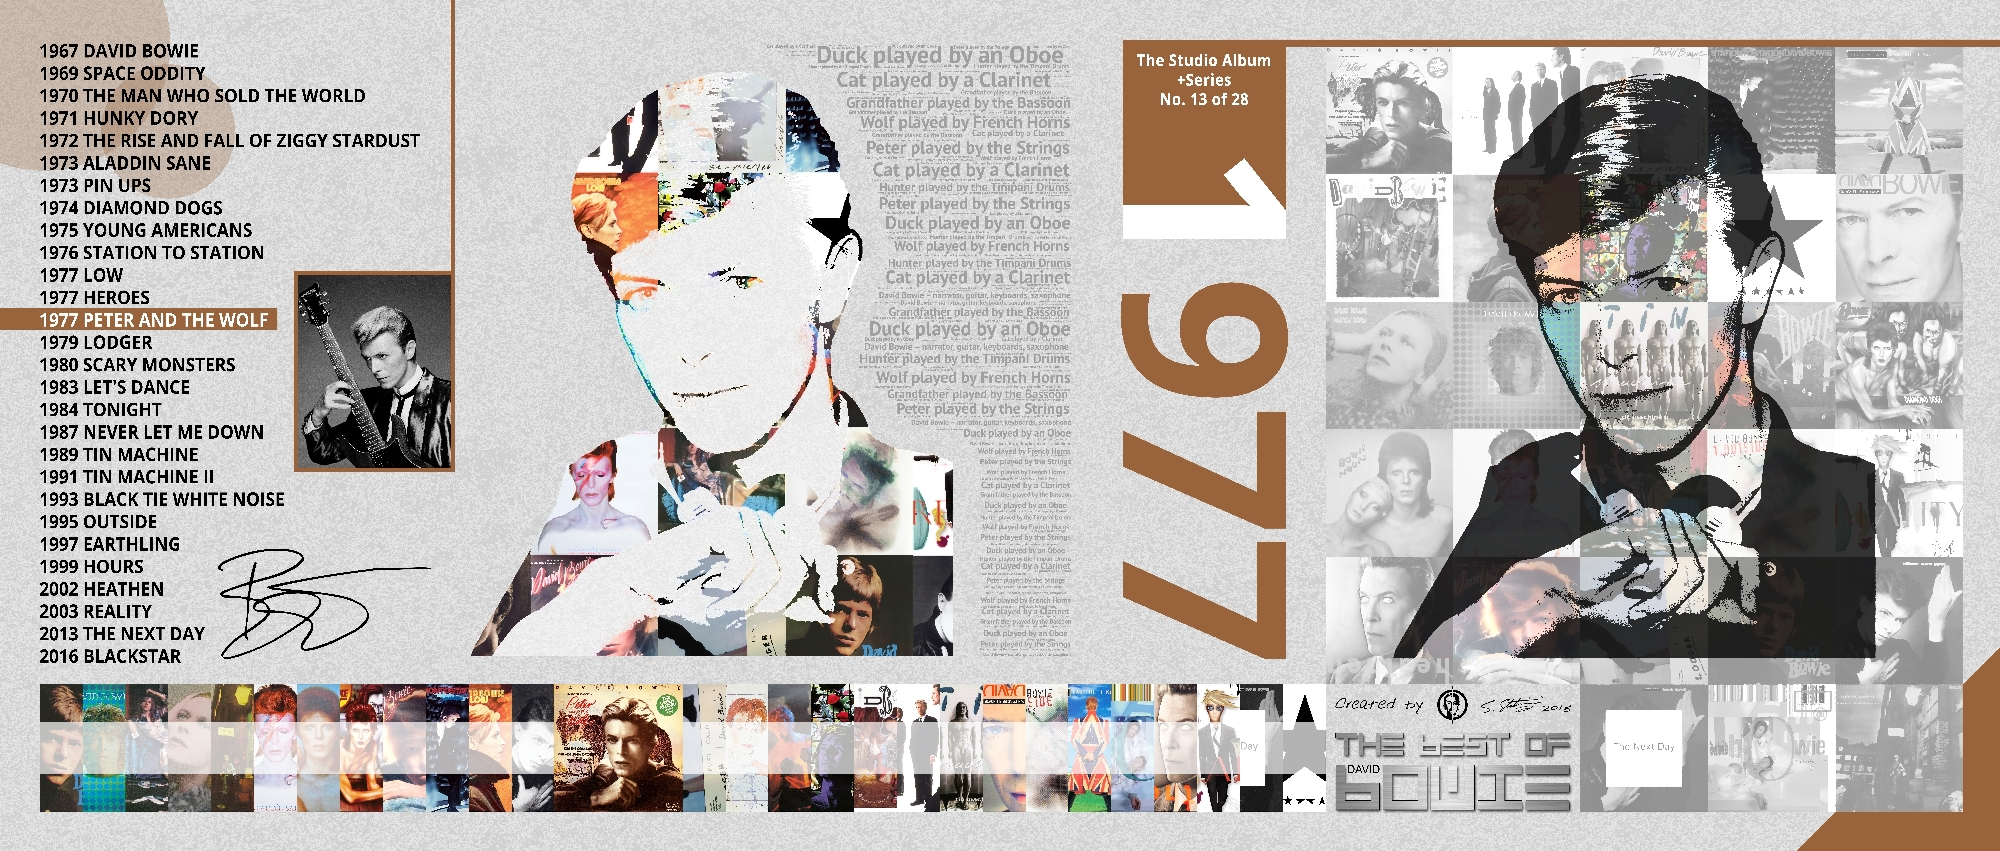 David Bowie Art Creation by Steve Stachini - 1977 Peter And The Wolf 162cm x 69cm